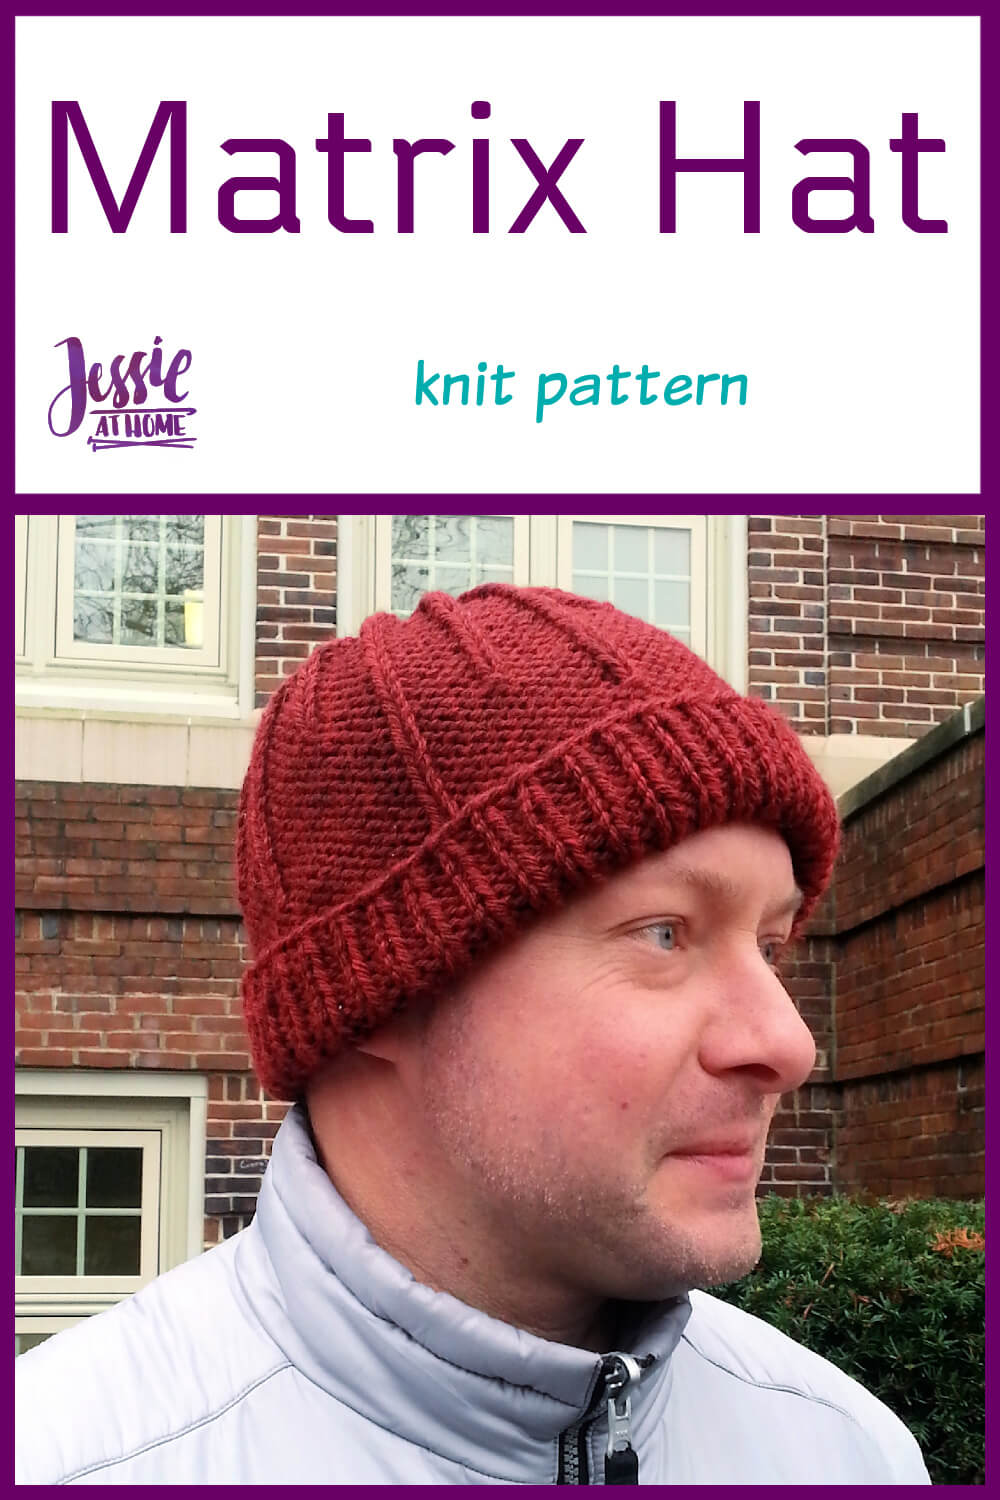 Matrix Hat - a knit pattern for when you need to escape